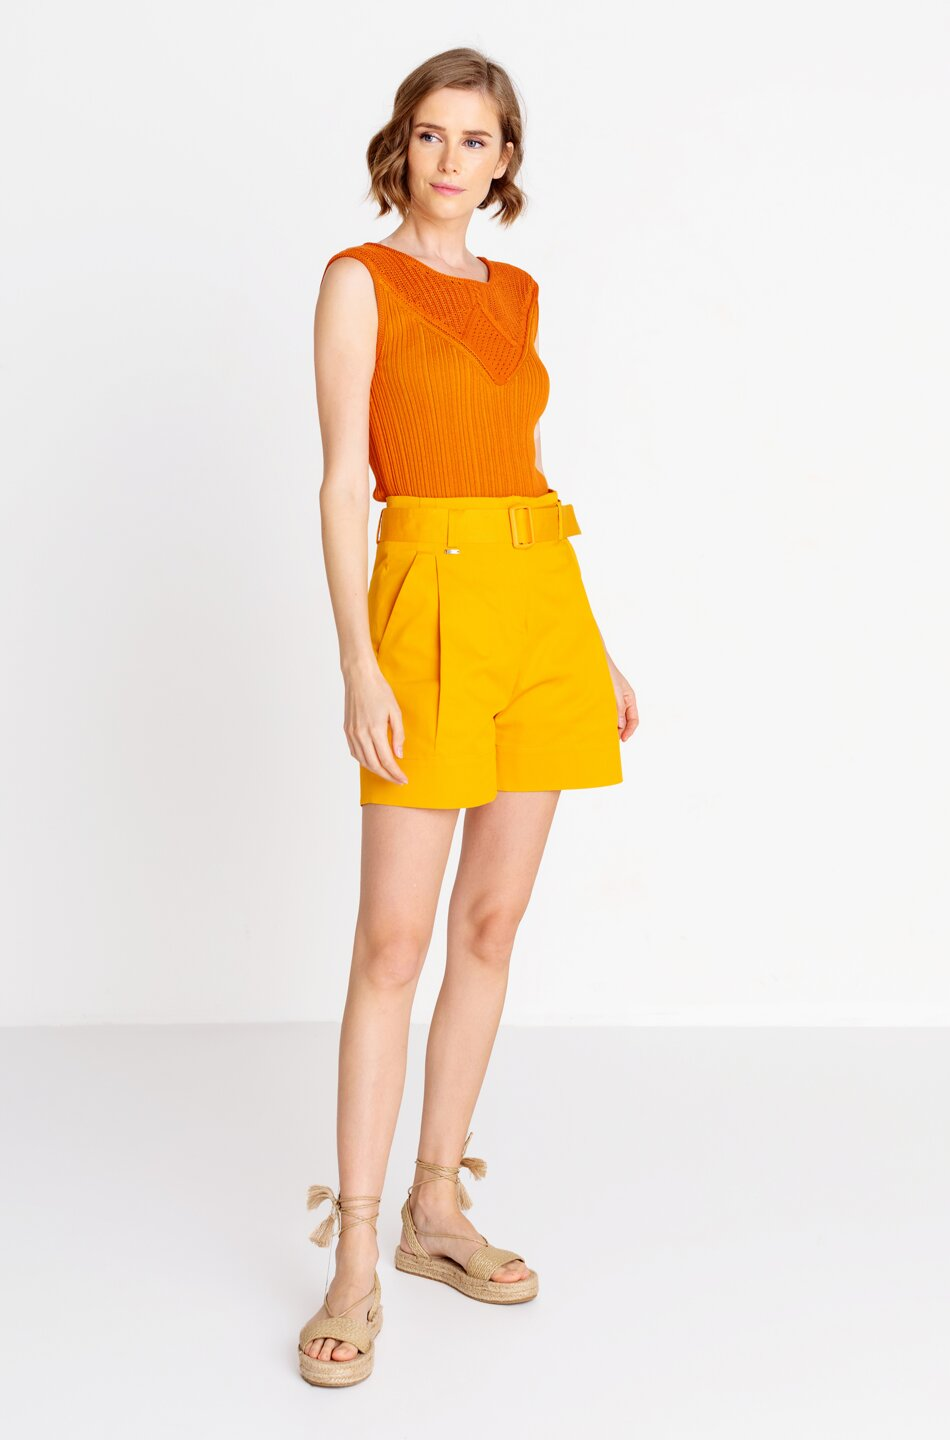 outfit-7c8a4245